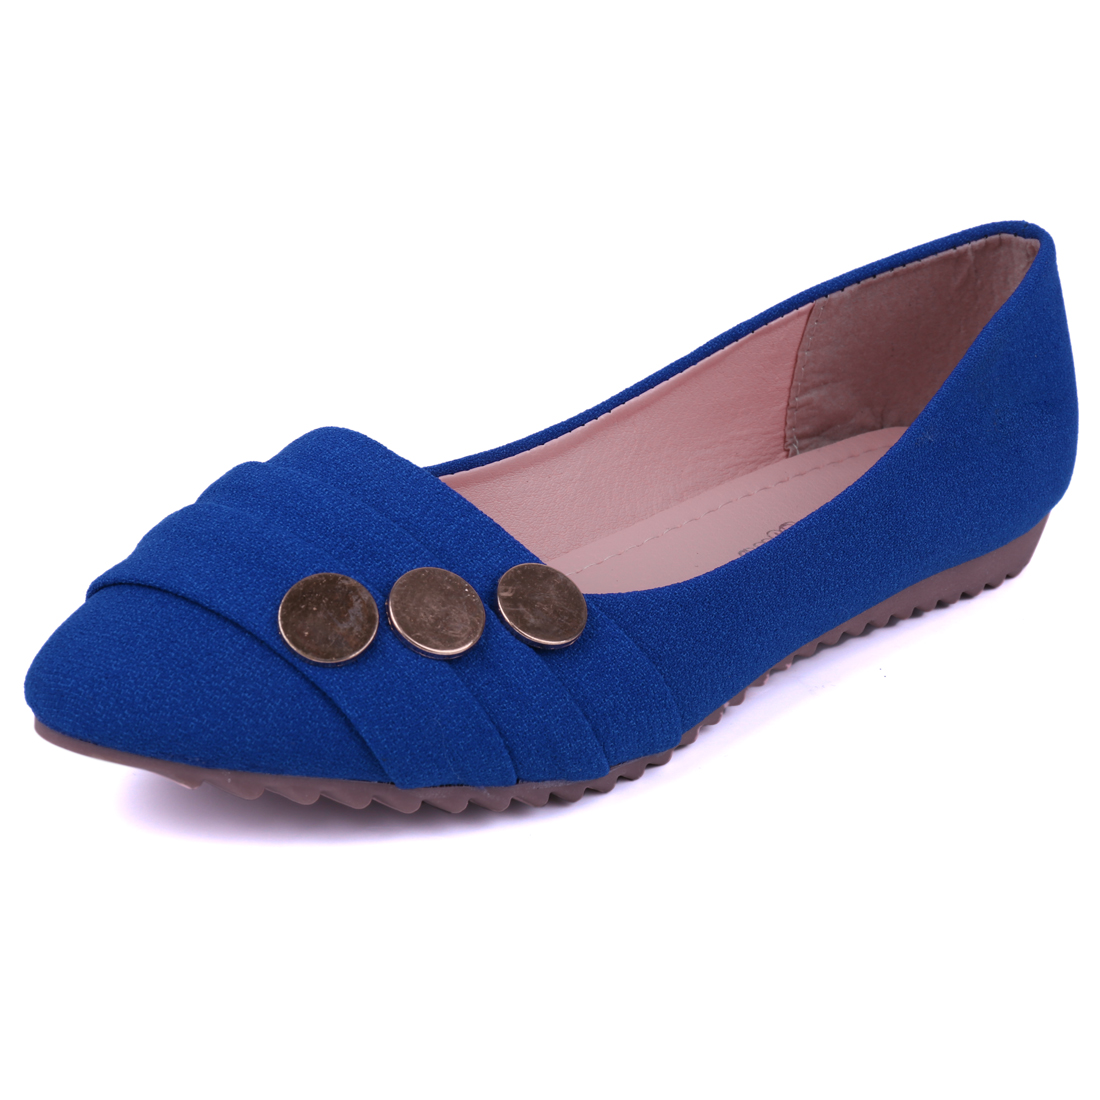 Ladies Ruched Upper Smooth Insole Stylish Flat Shoes Royal Blue US 8